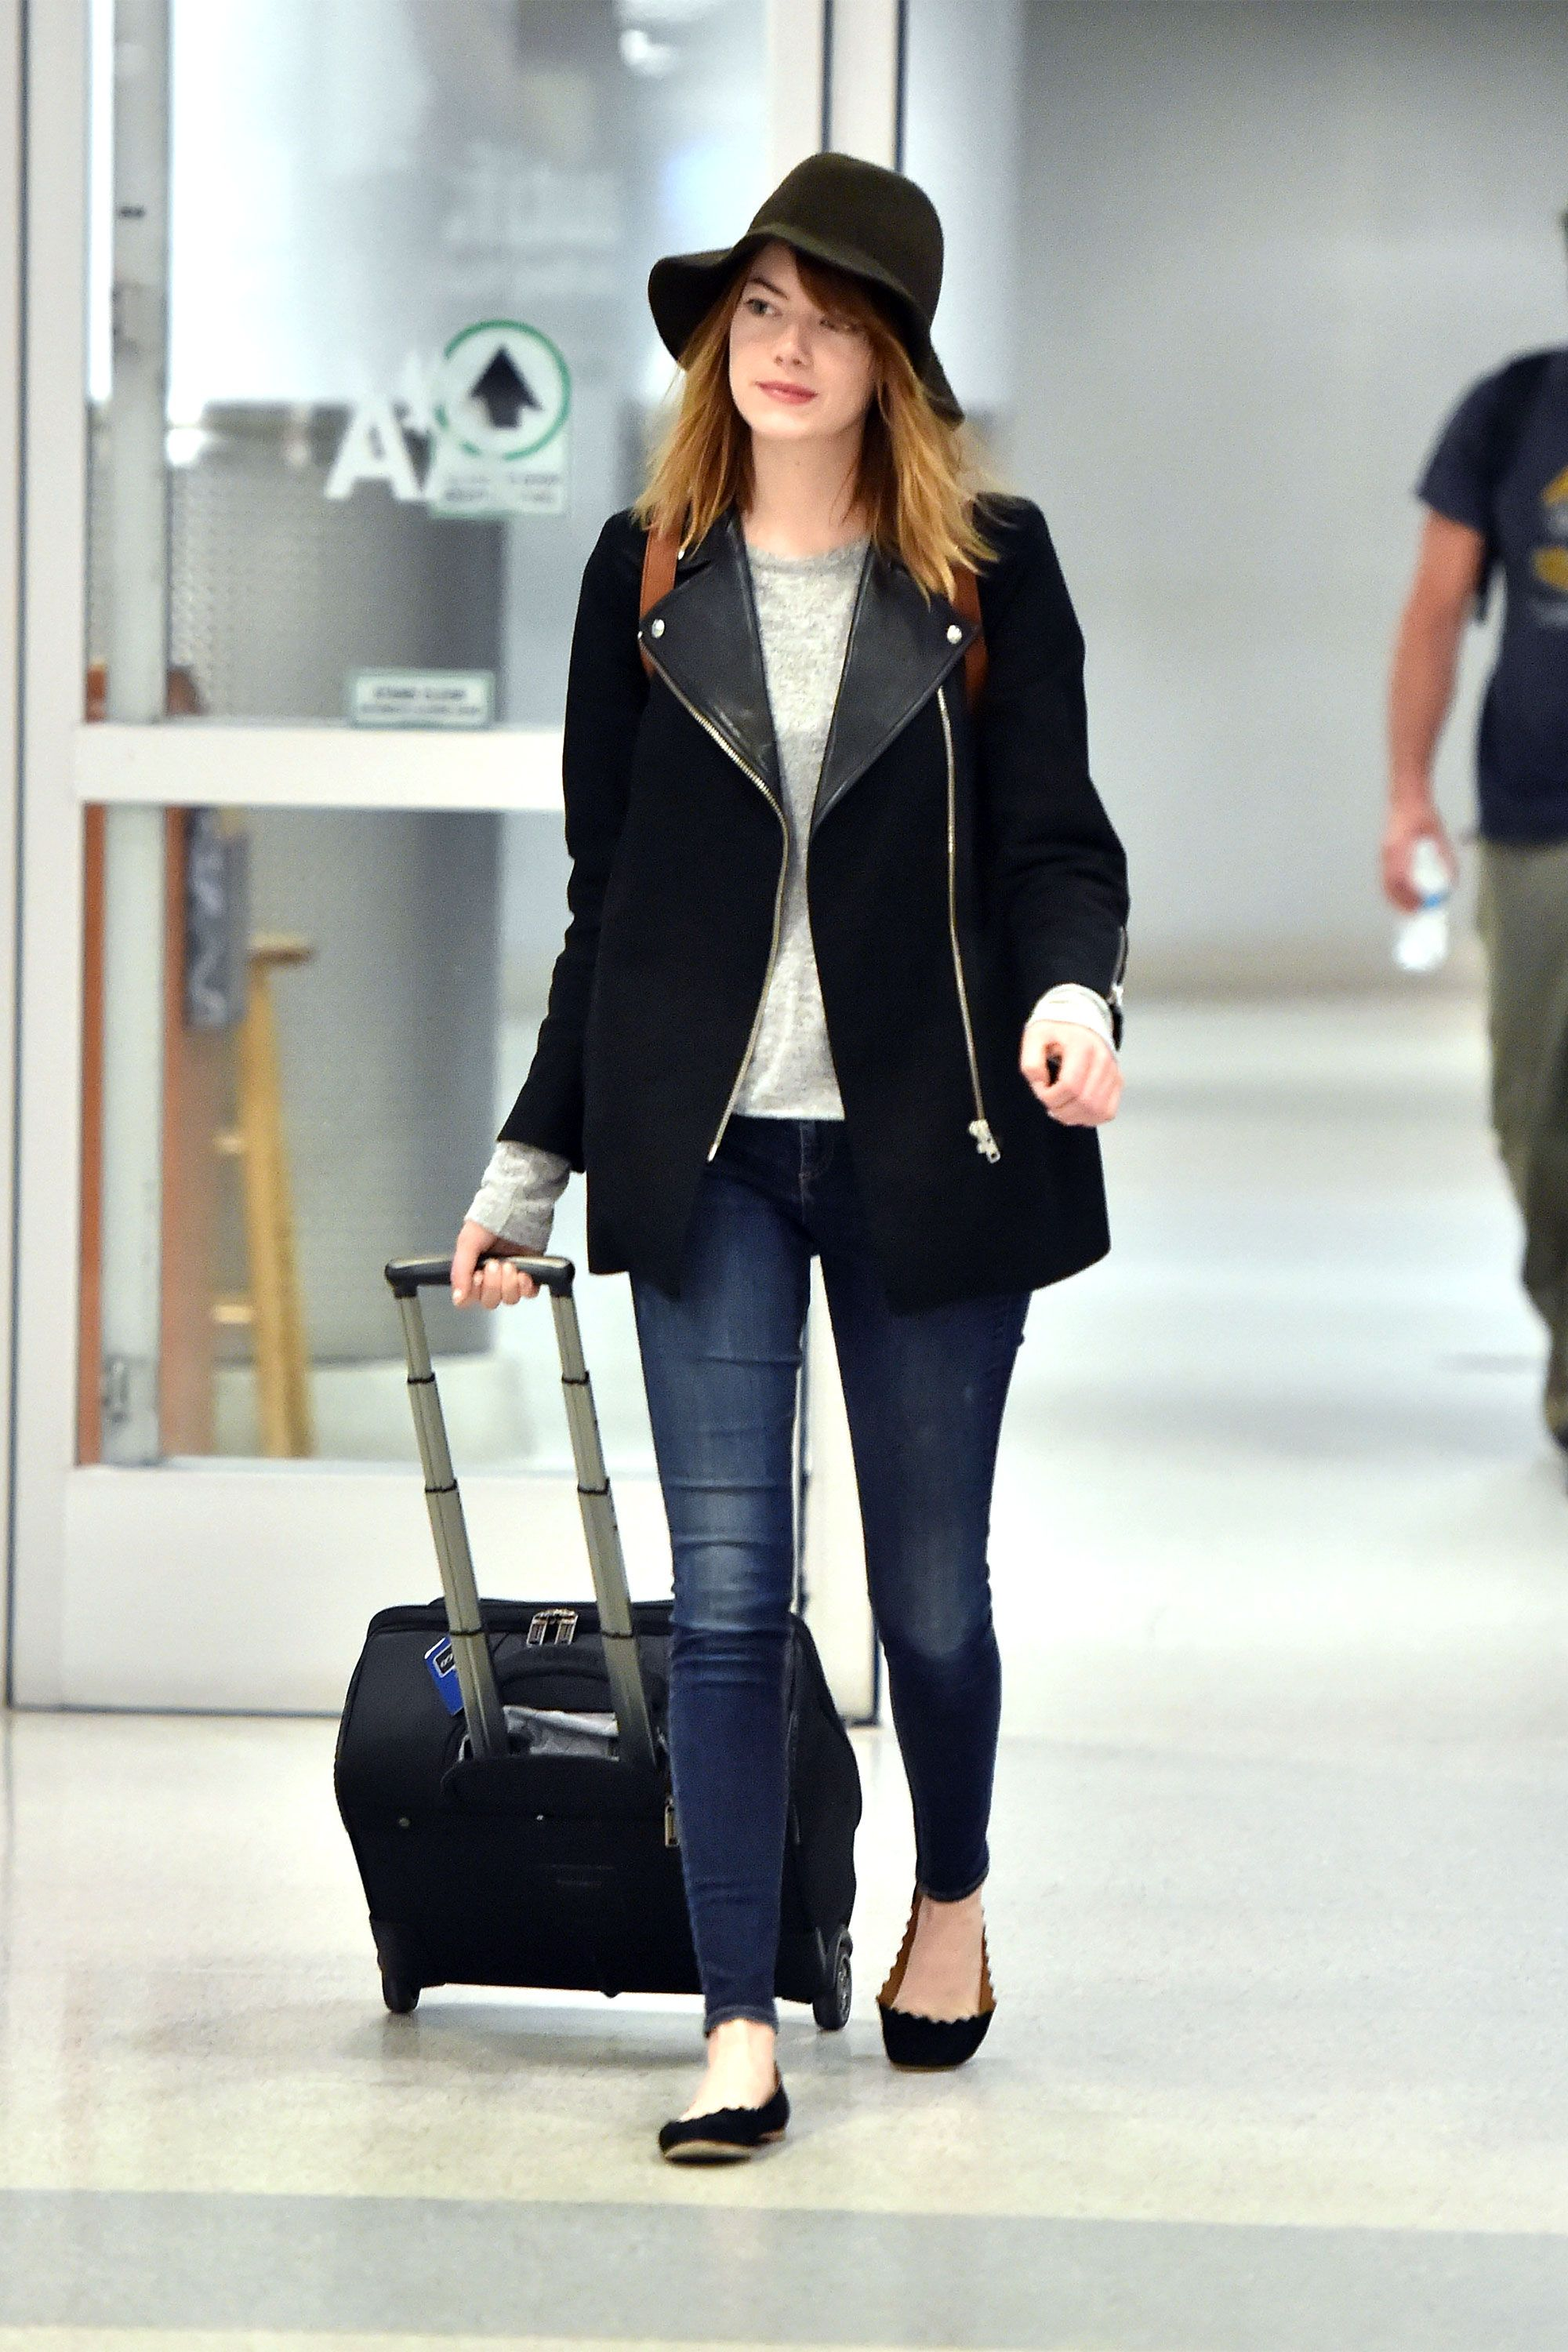 Image result for airport style